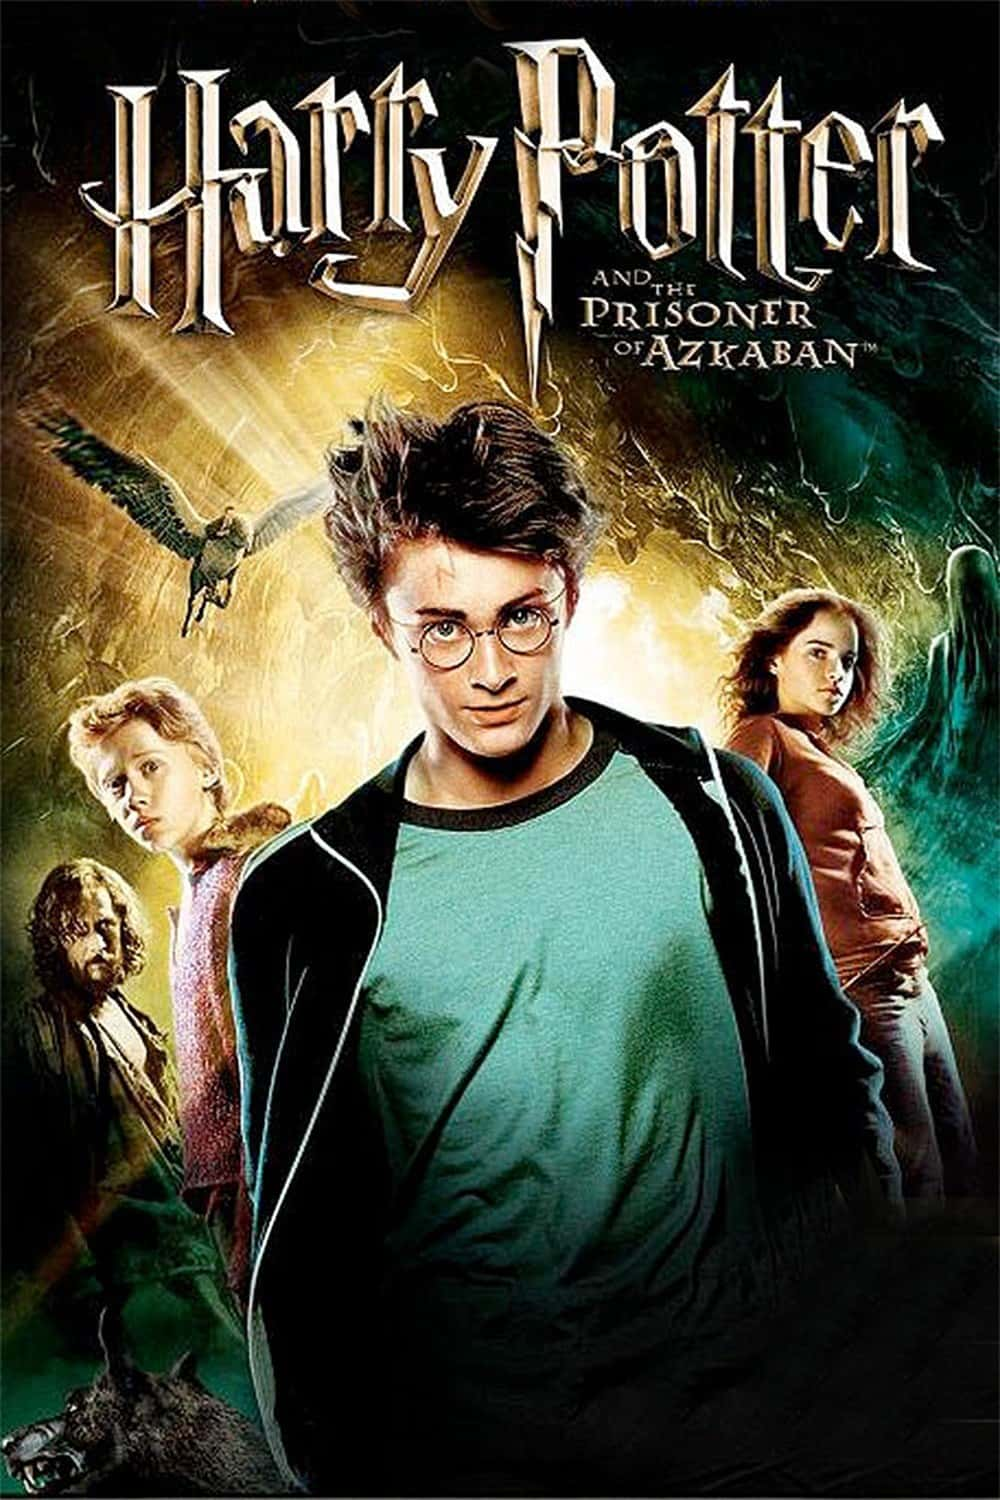 Harry_Potter_and_the_Prisoner_of_Azkaban_Poster.jpg